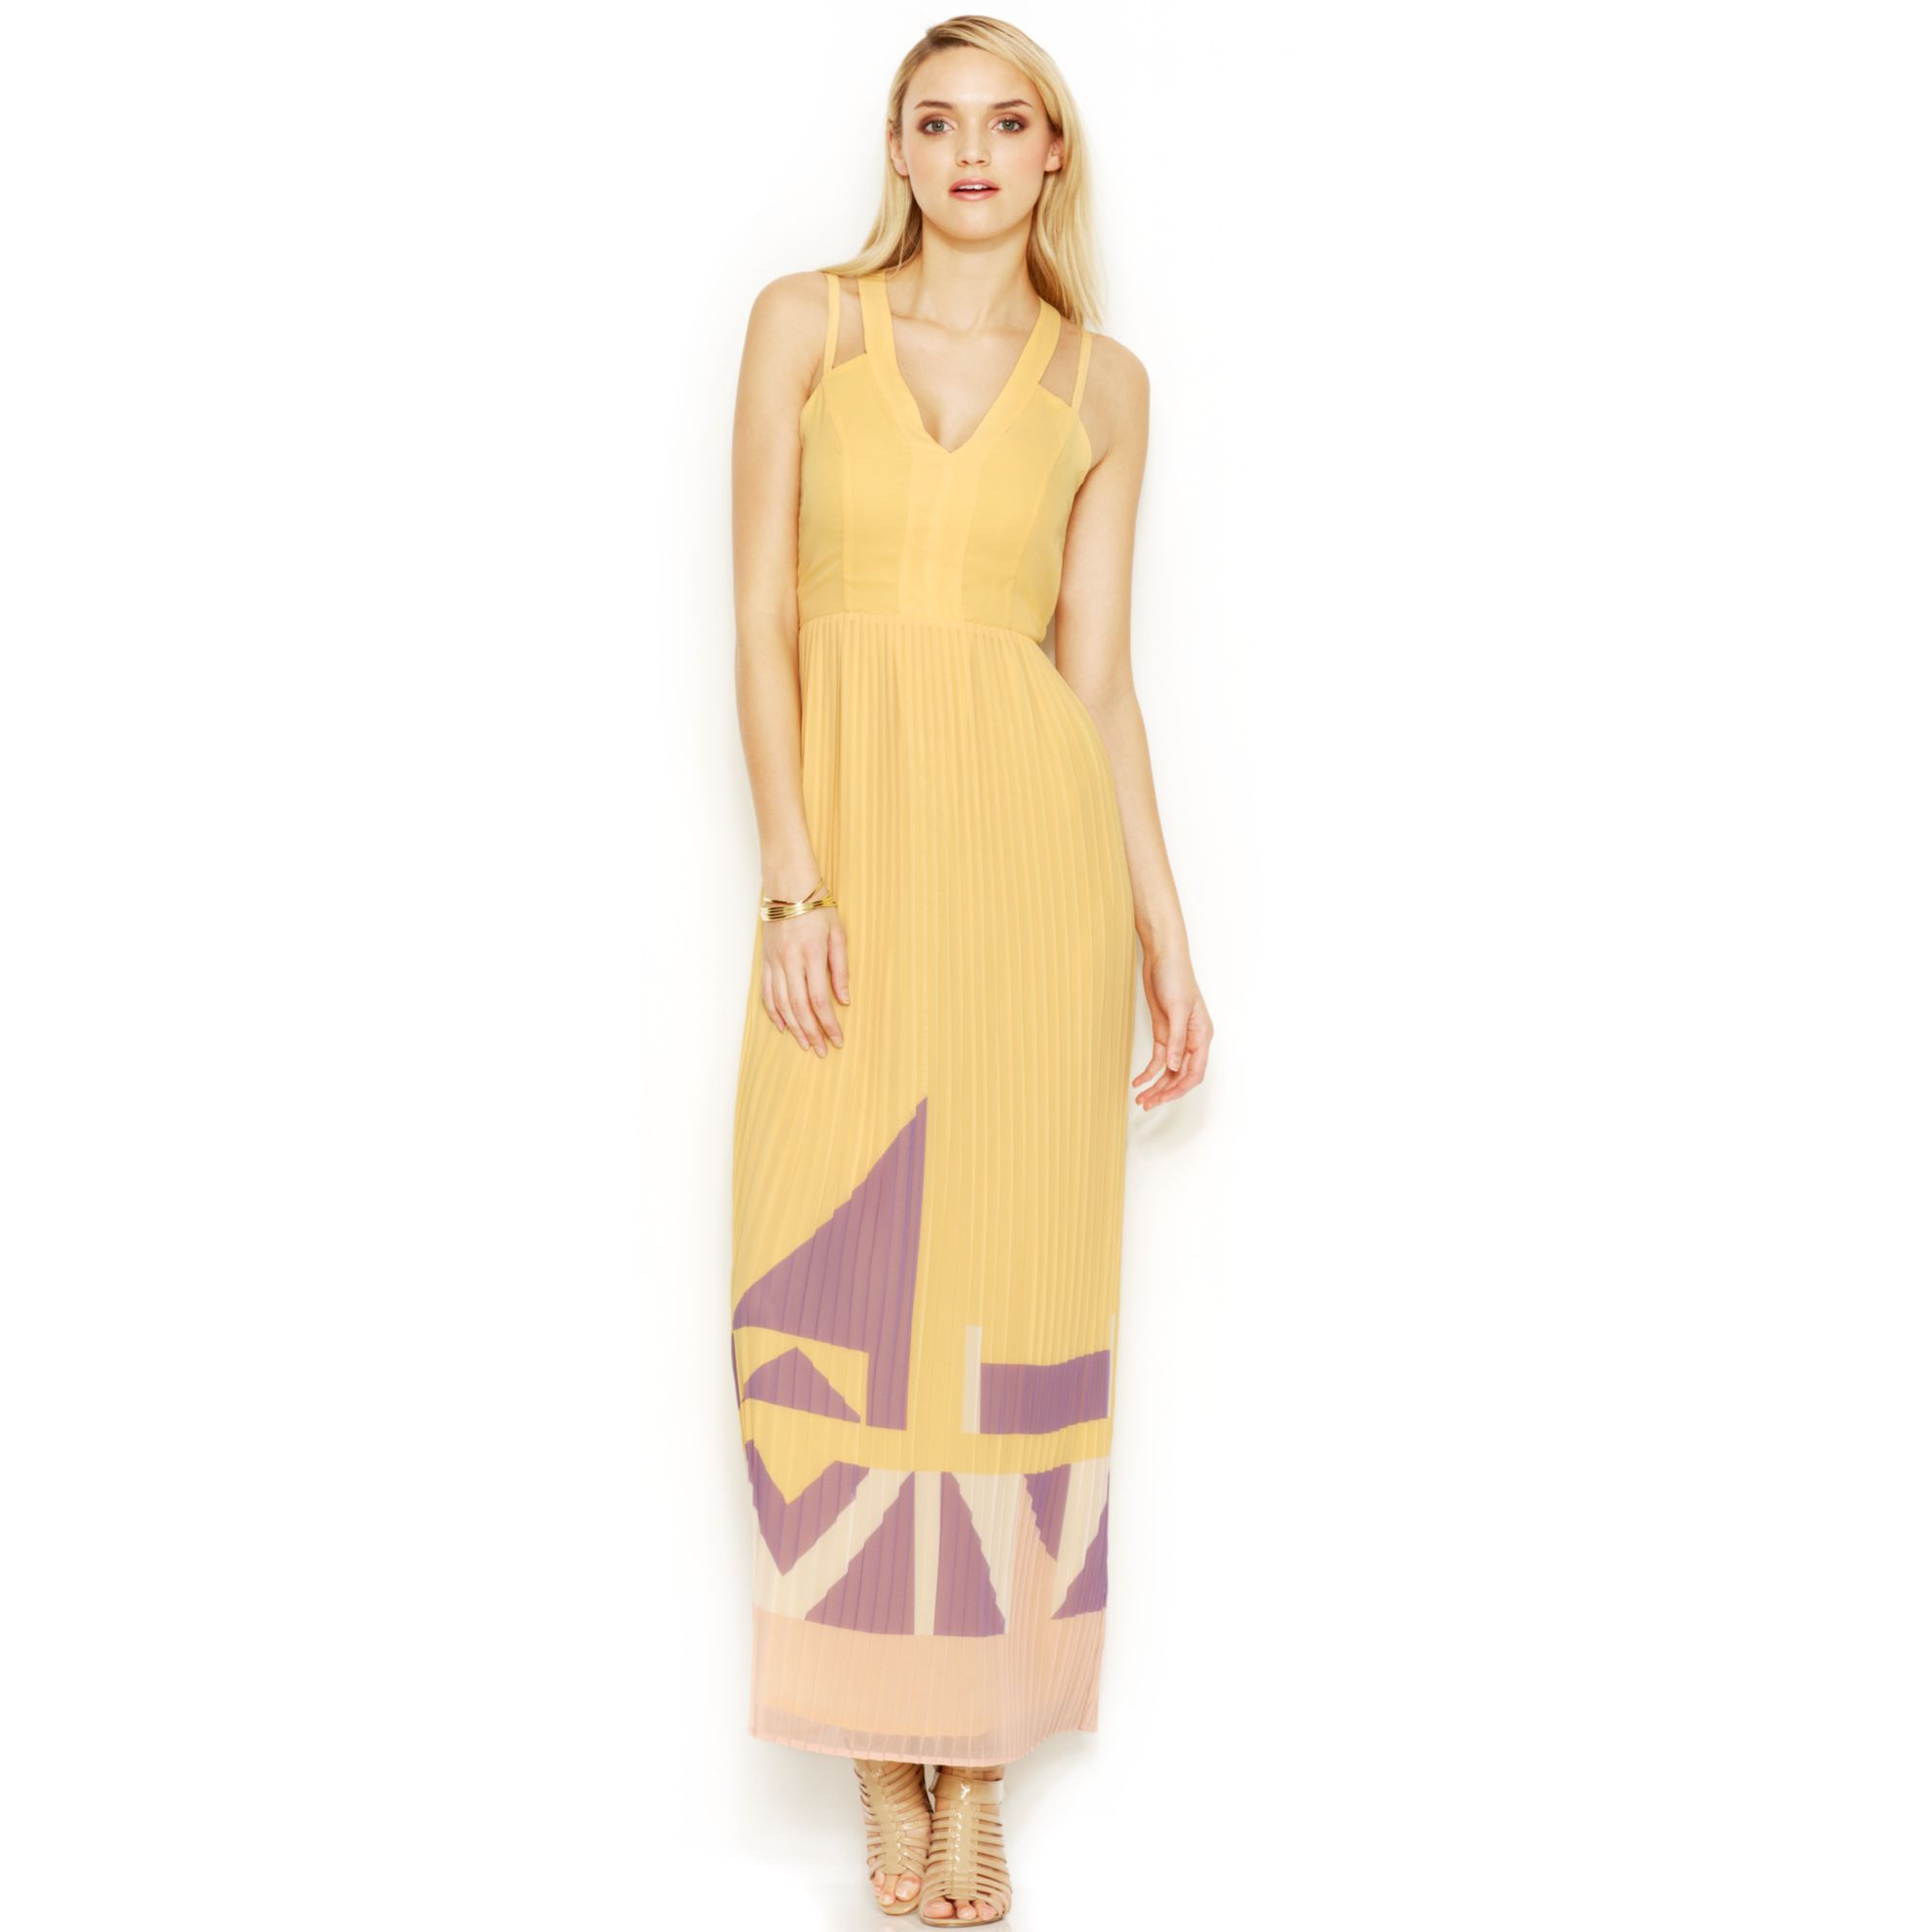 French connection Printed Maxi Dress in Yellow | Lyst